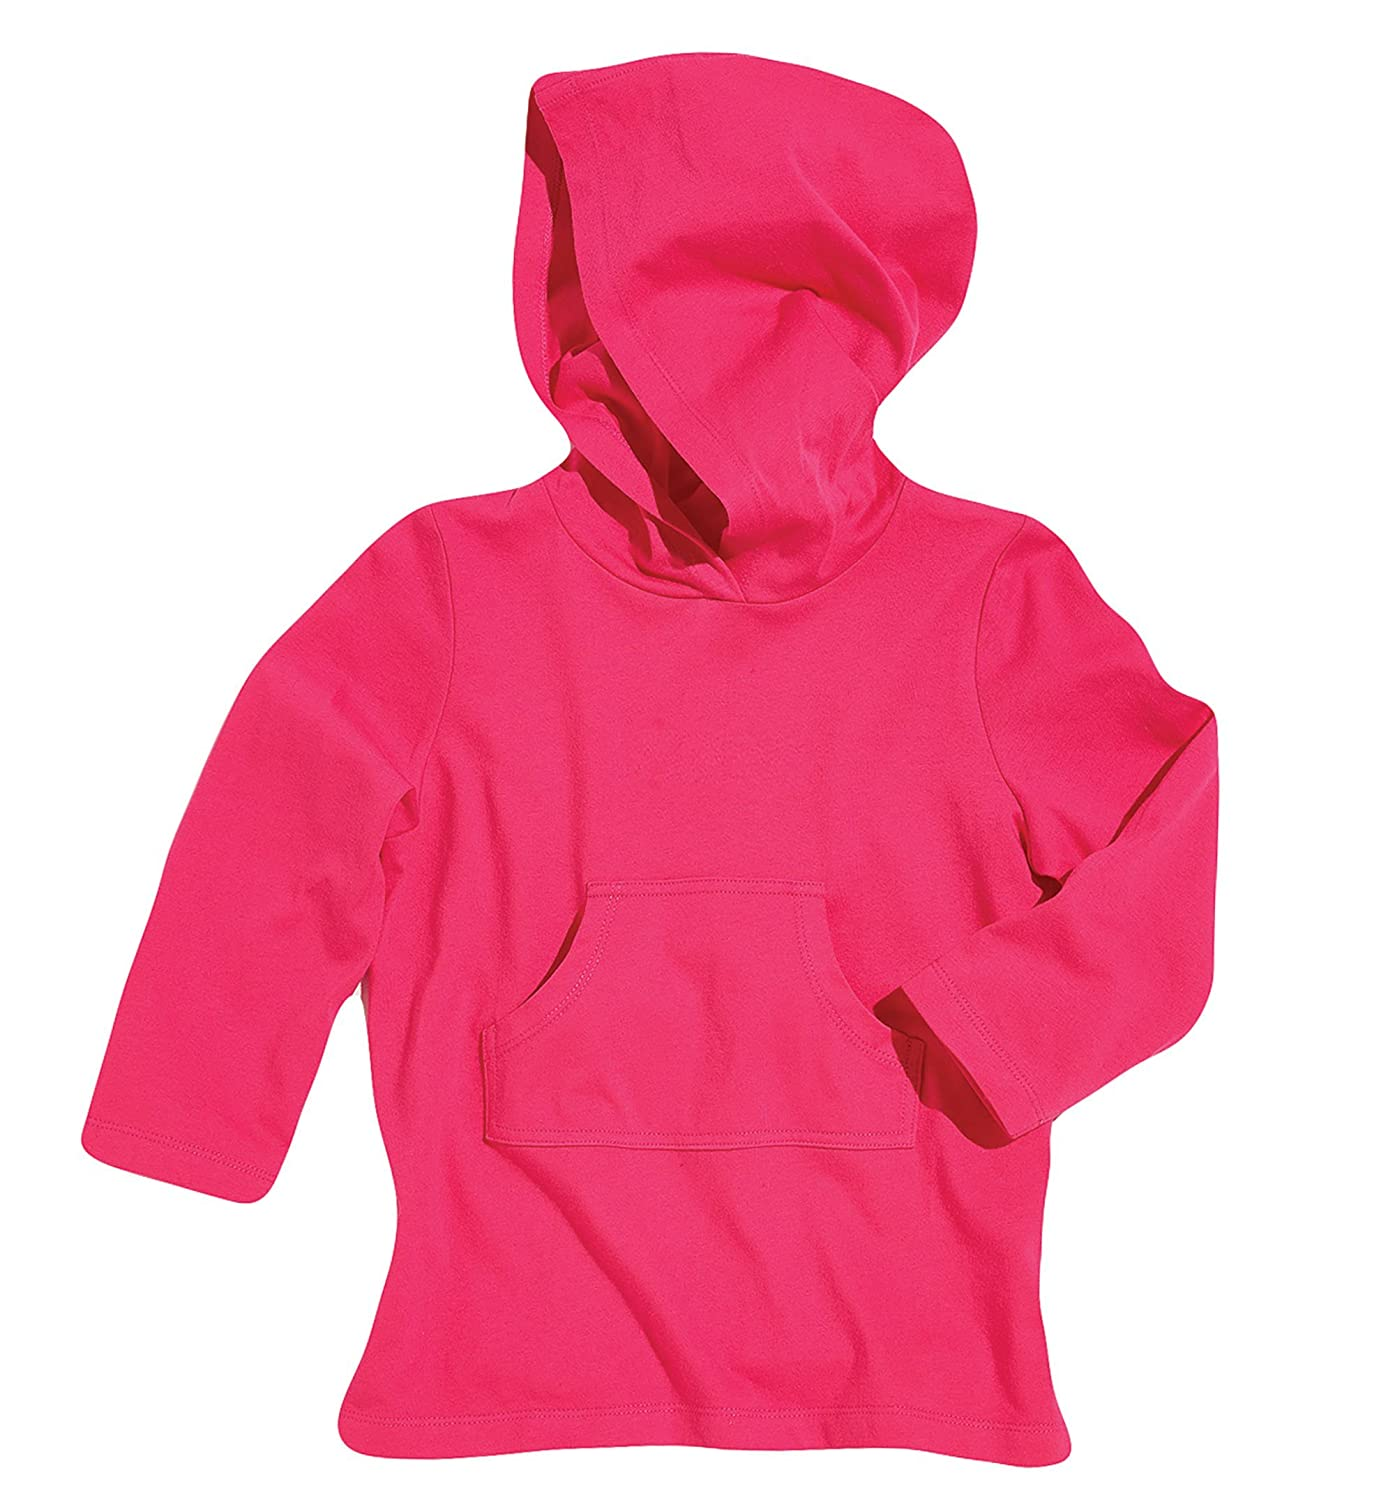 Sun Smarties Cotton Girls Long Sleeve Hoodie Shirt Swim or Beach Cover-Up UPF50+ 6890383